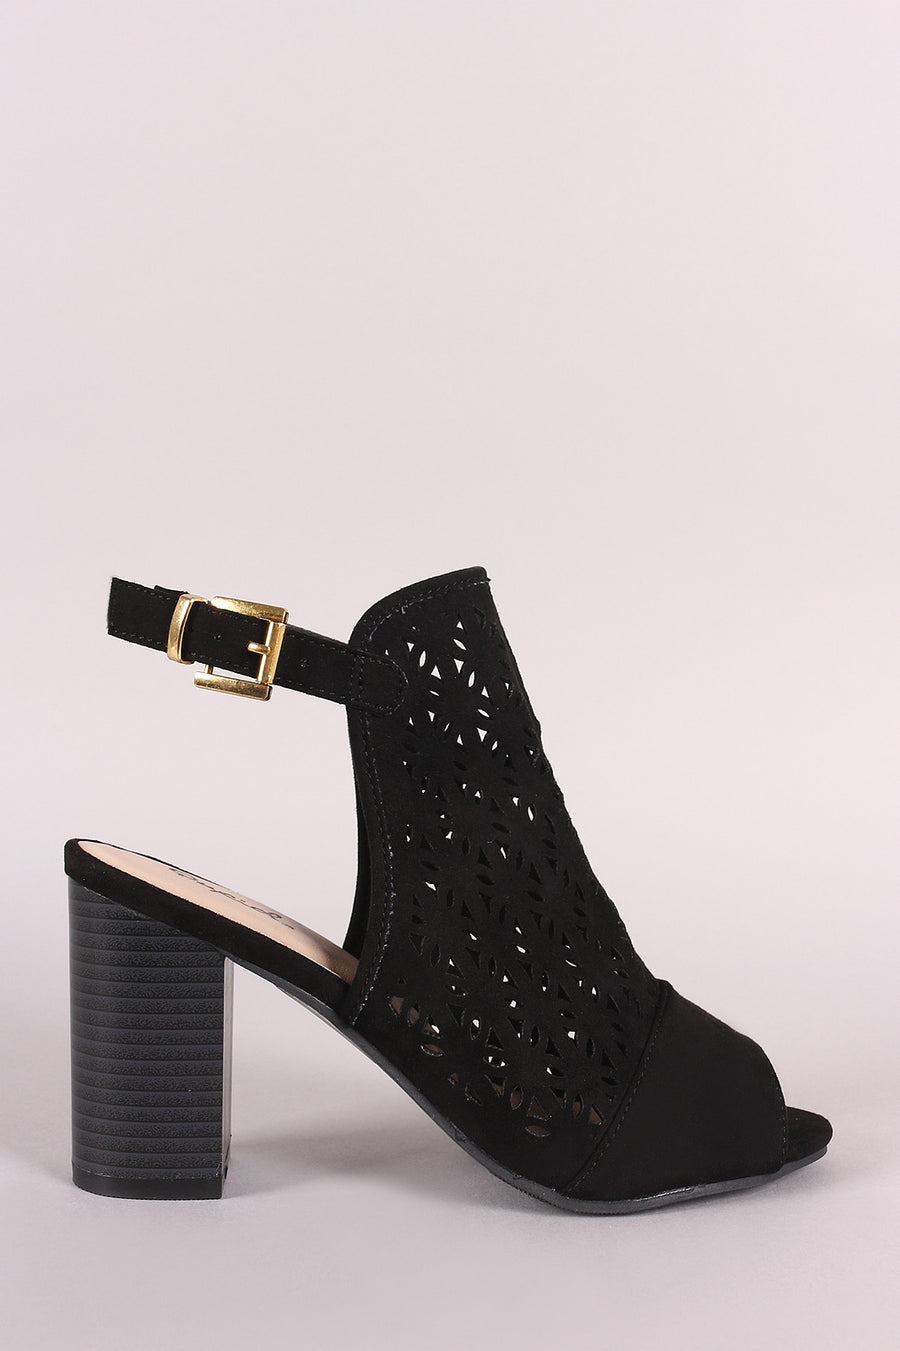 Qupid Perforated Suede Peep Toe Slingback Chunky Heel Mule